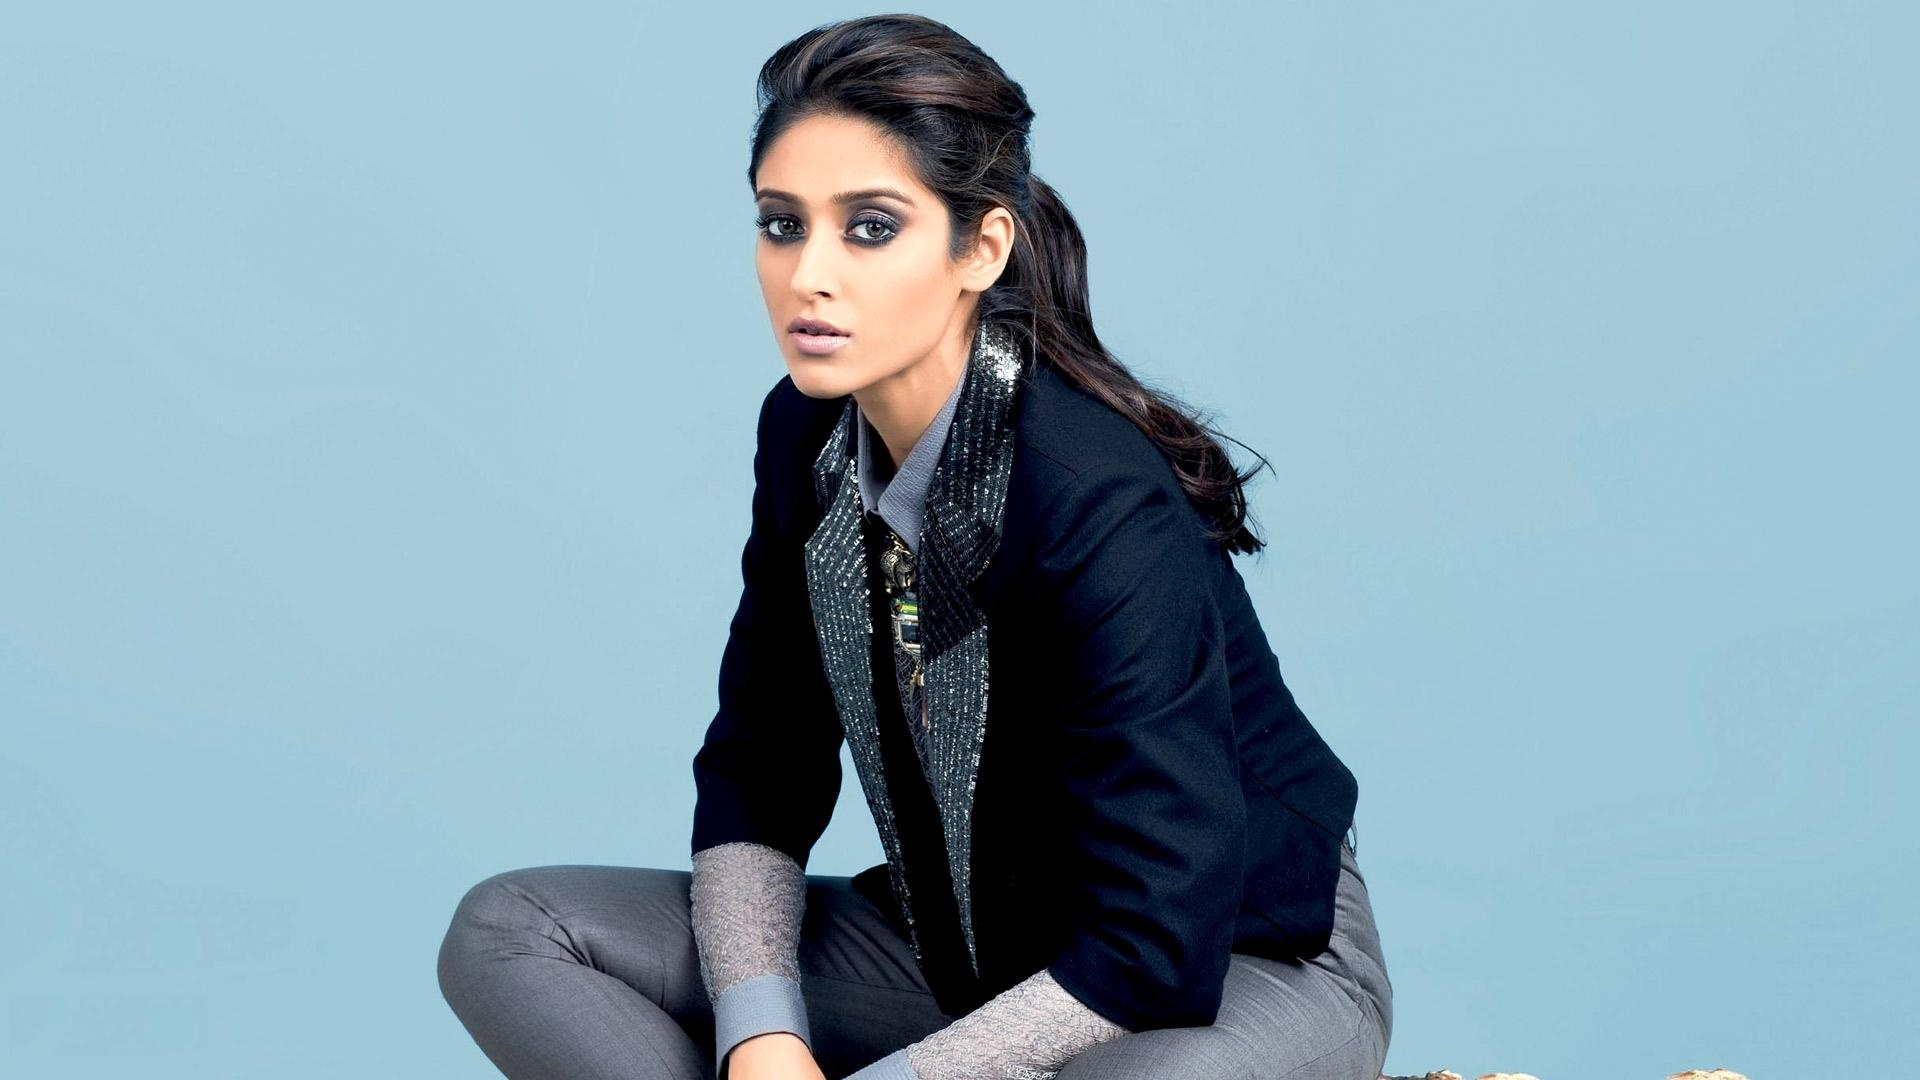 Awesome Ileana D'cruz Wallpaper | Full HD Pictures